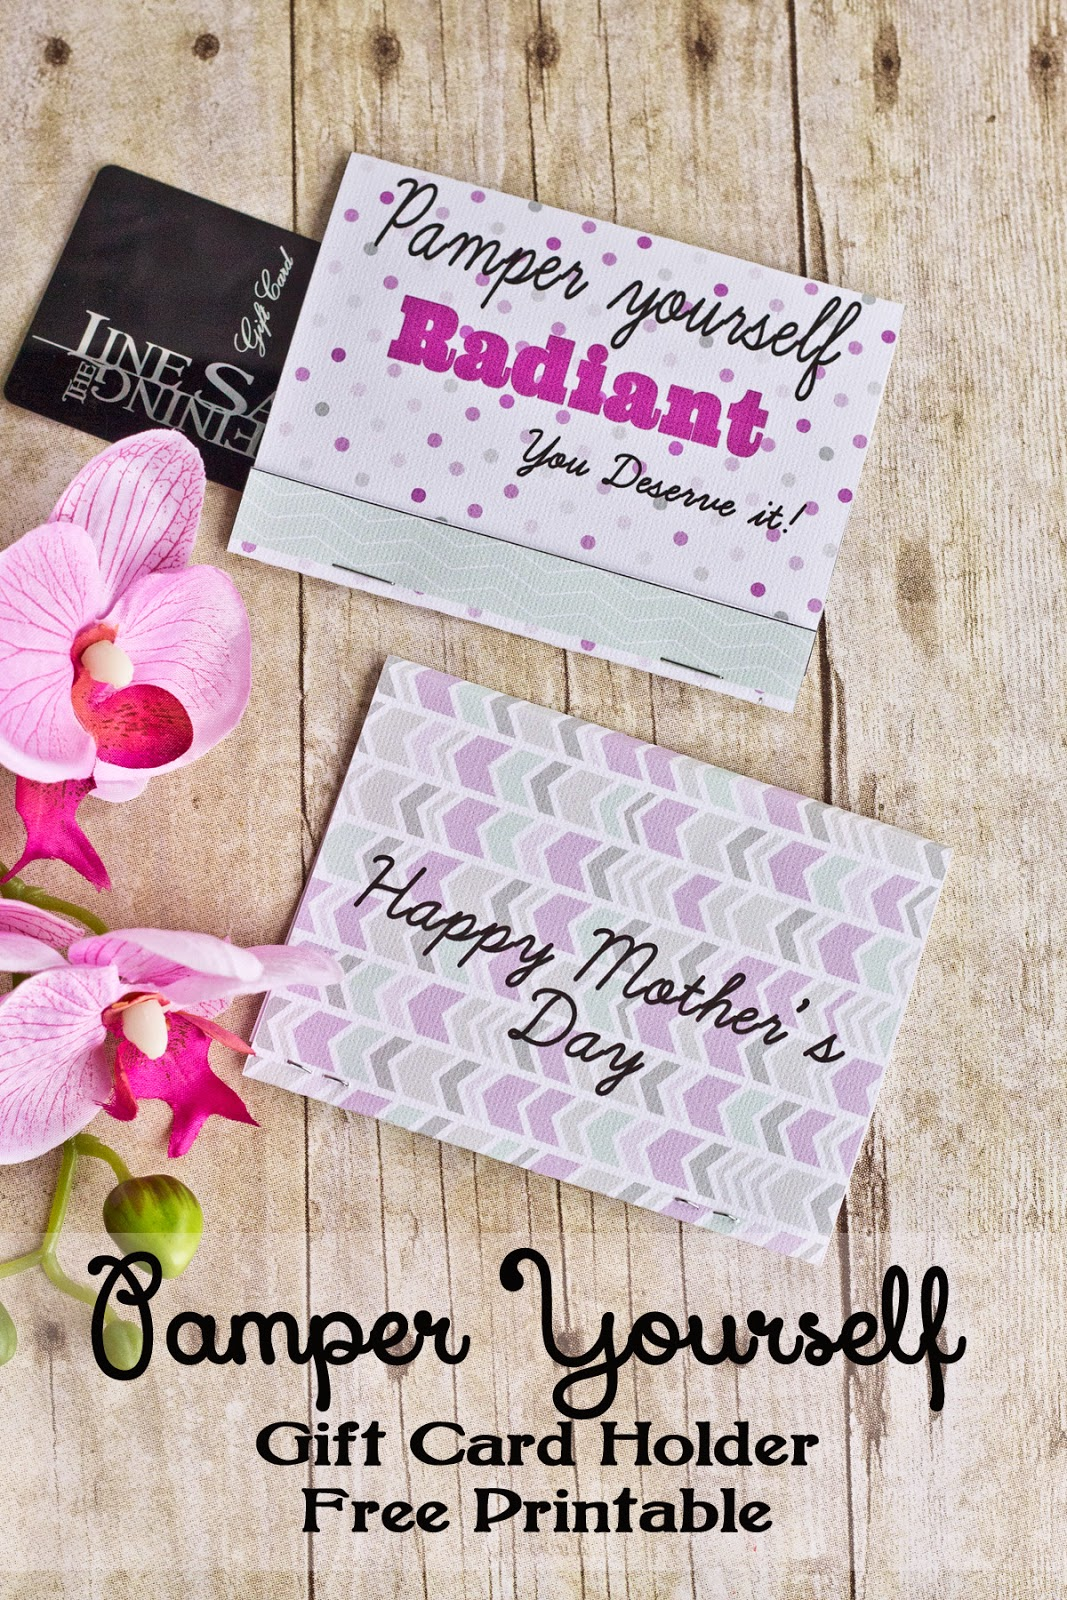 pamper yourself gift card holder printable www.freetimefrolics.com #mothersday